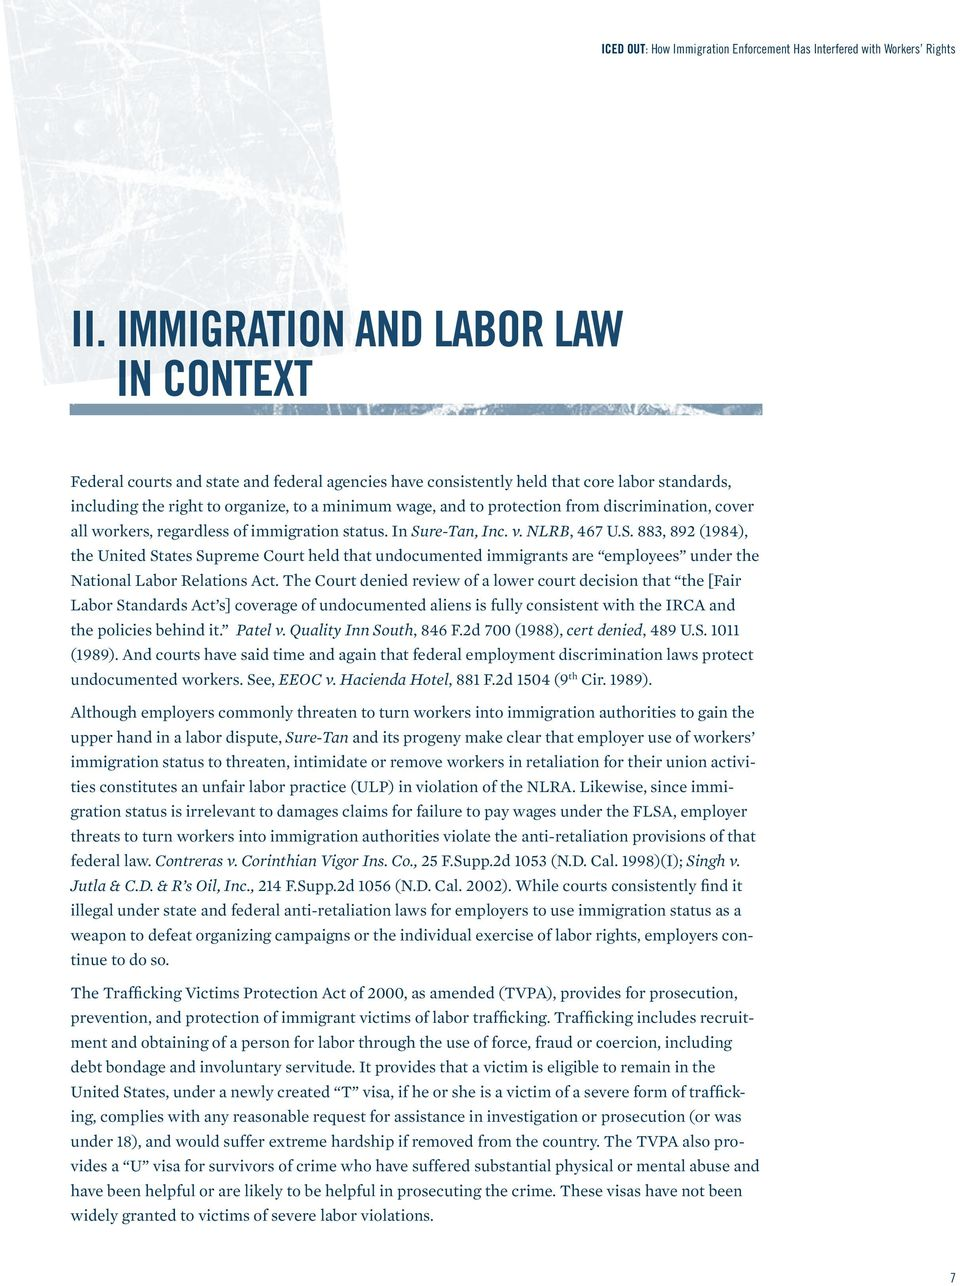 re-Tan, Inc. v. NLRB, 467 U.S. 883, 892 (1984), the United States Supreme Court held that undocumented immigrants are employees under the National Labor Relations Act.